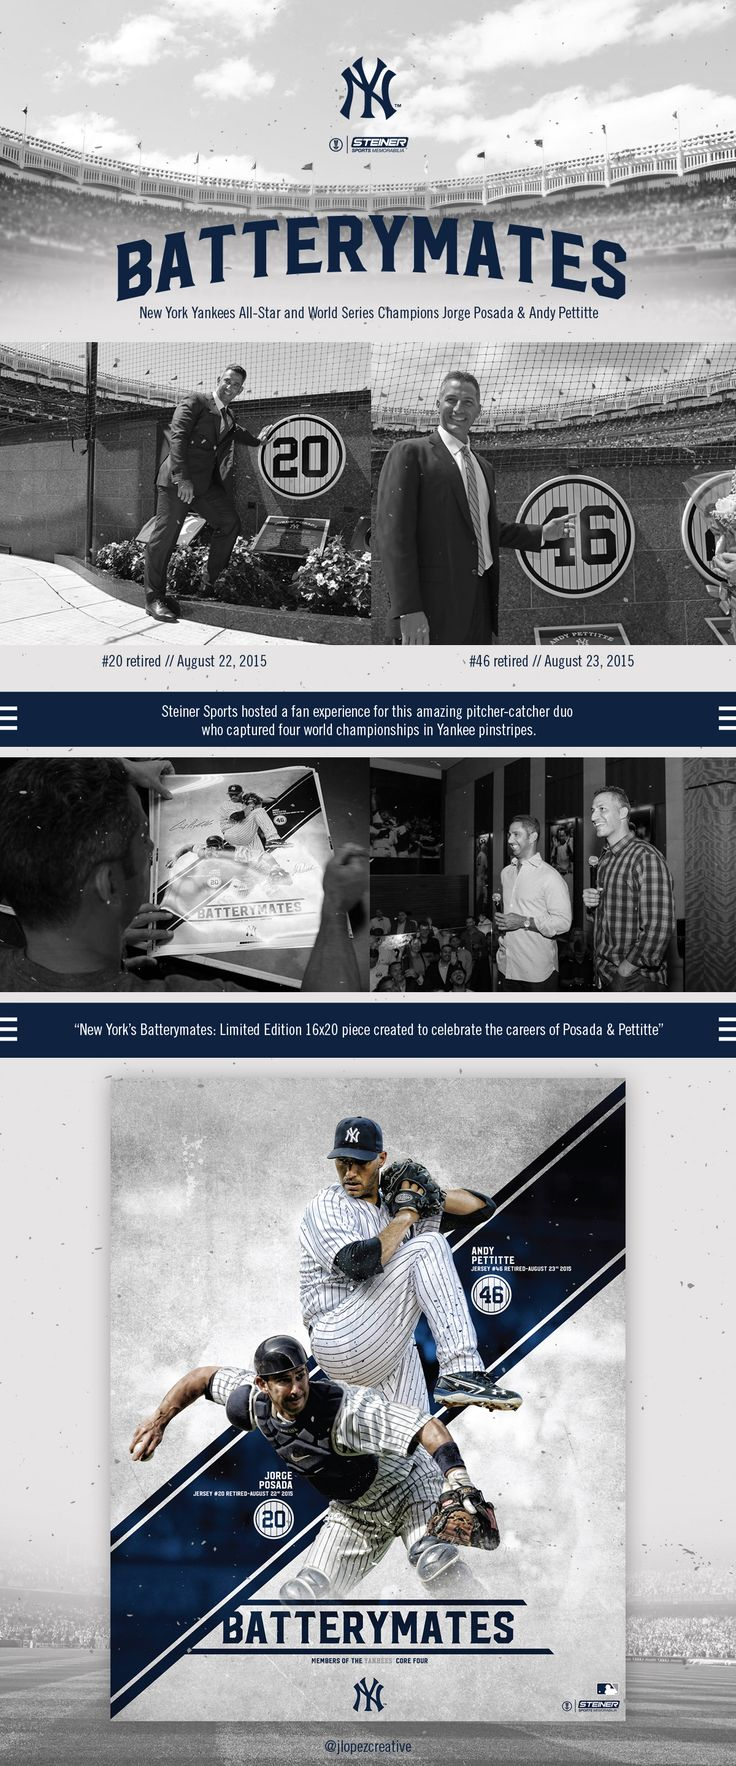 Limited Edition print for the pinstripe duo Jorge Posada & Andy Pettitte.